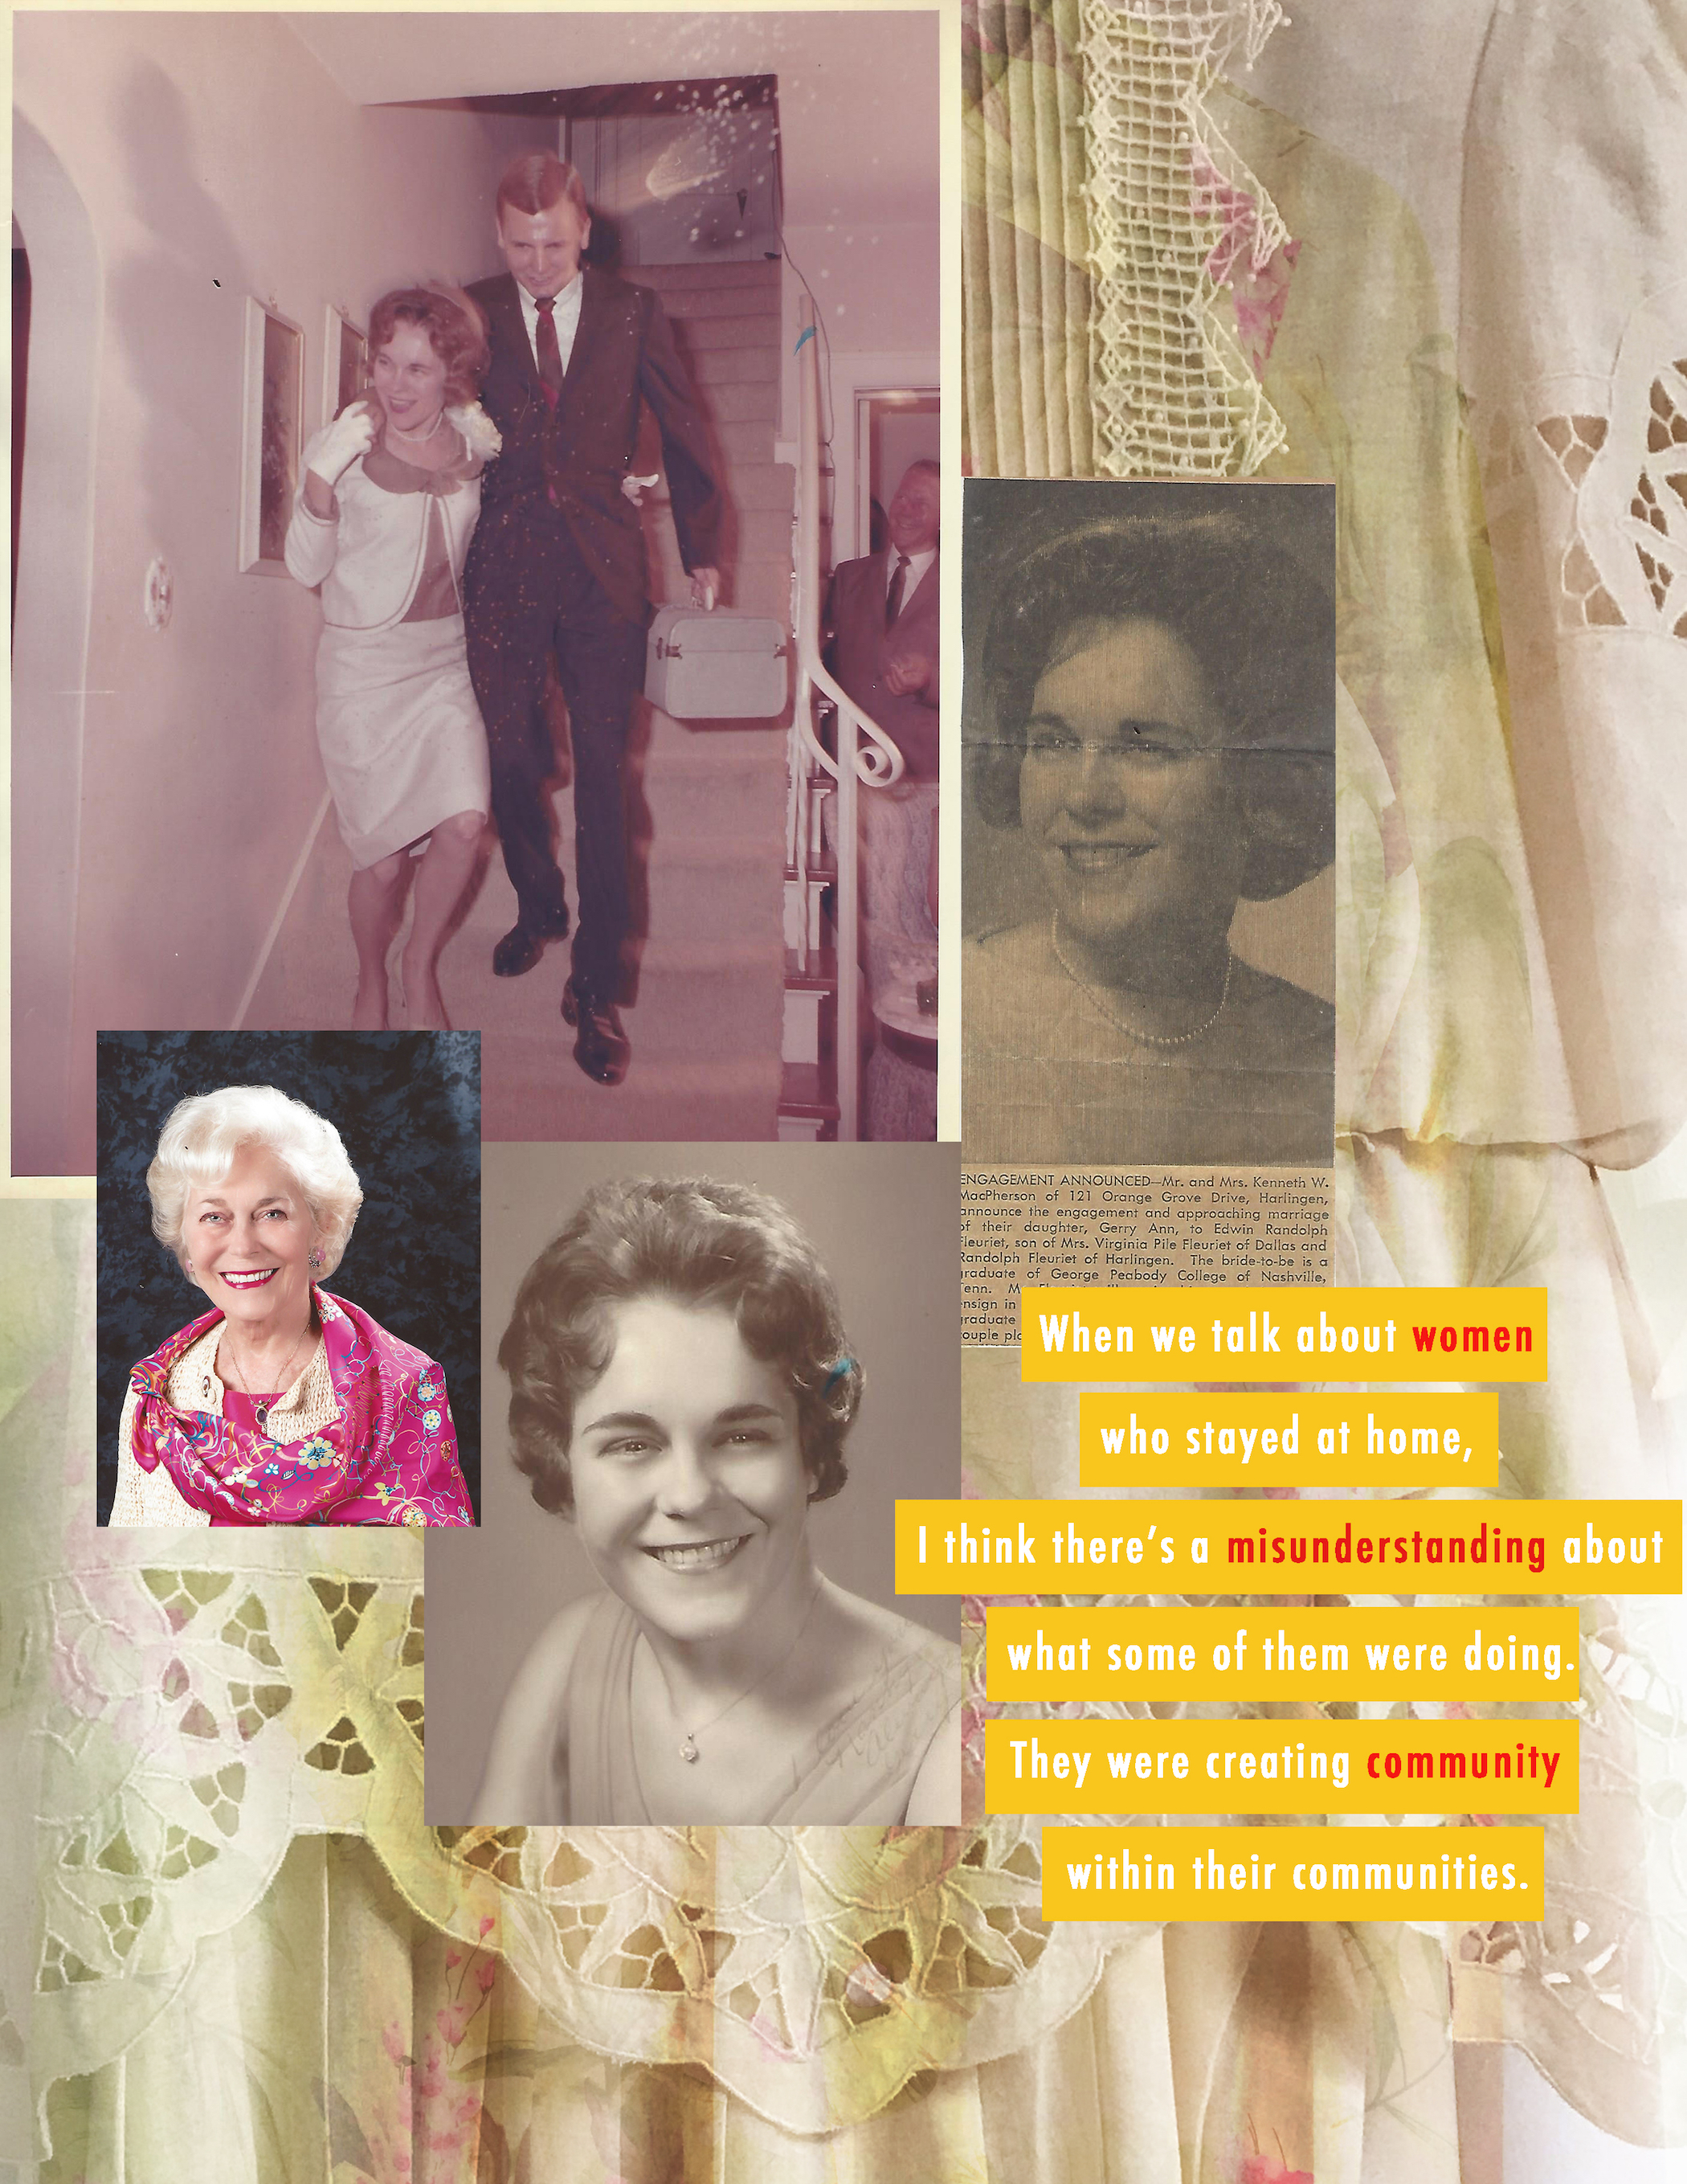 Top left: Gerry and her husband heading from their wedding reception to the Mexican border town of Brownsville, from where they left the next morning for their honeymoon in Mexico City and San Jose de Purua, an old spa resort in the mountains. (Collage by    Isabel Bina   )